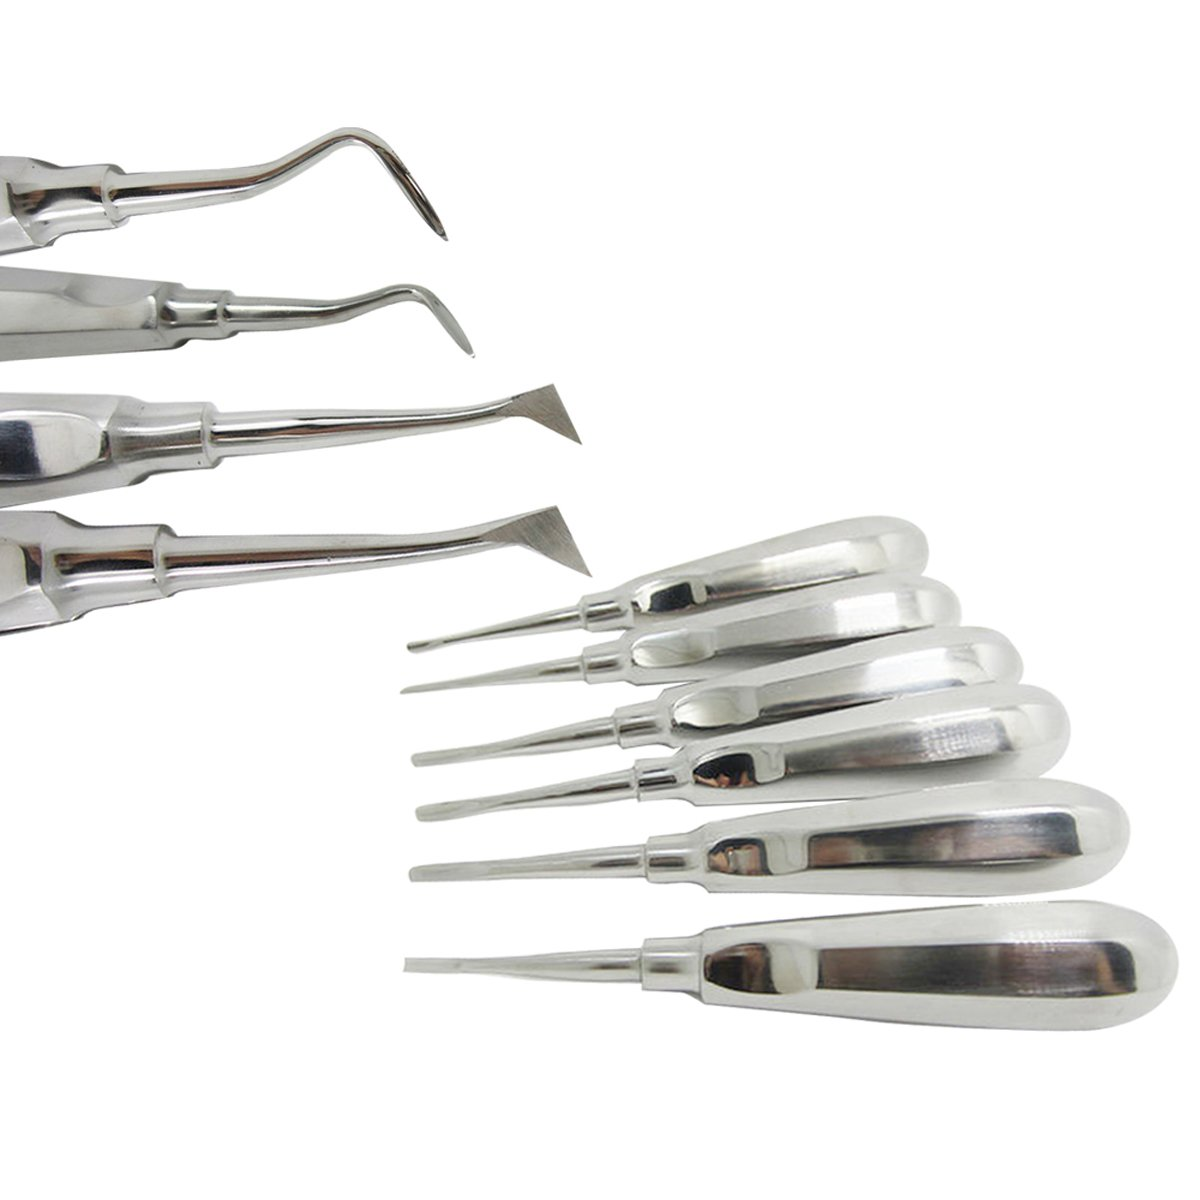 Dental Stainless Steel Metal Teeth Extraction tool stainless steel Handle Tooth Straight Teeth Ting Oral Care Tools 10 Sets